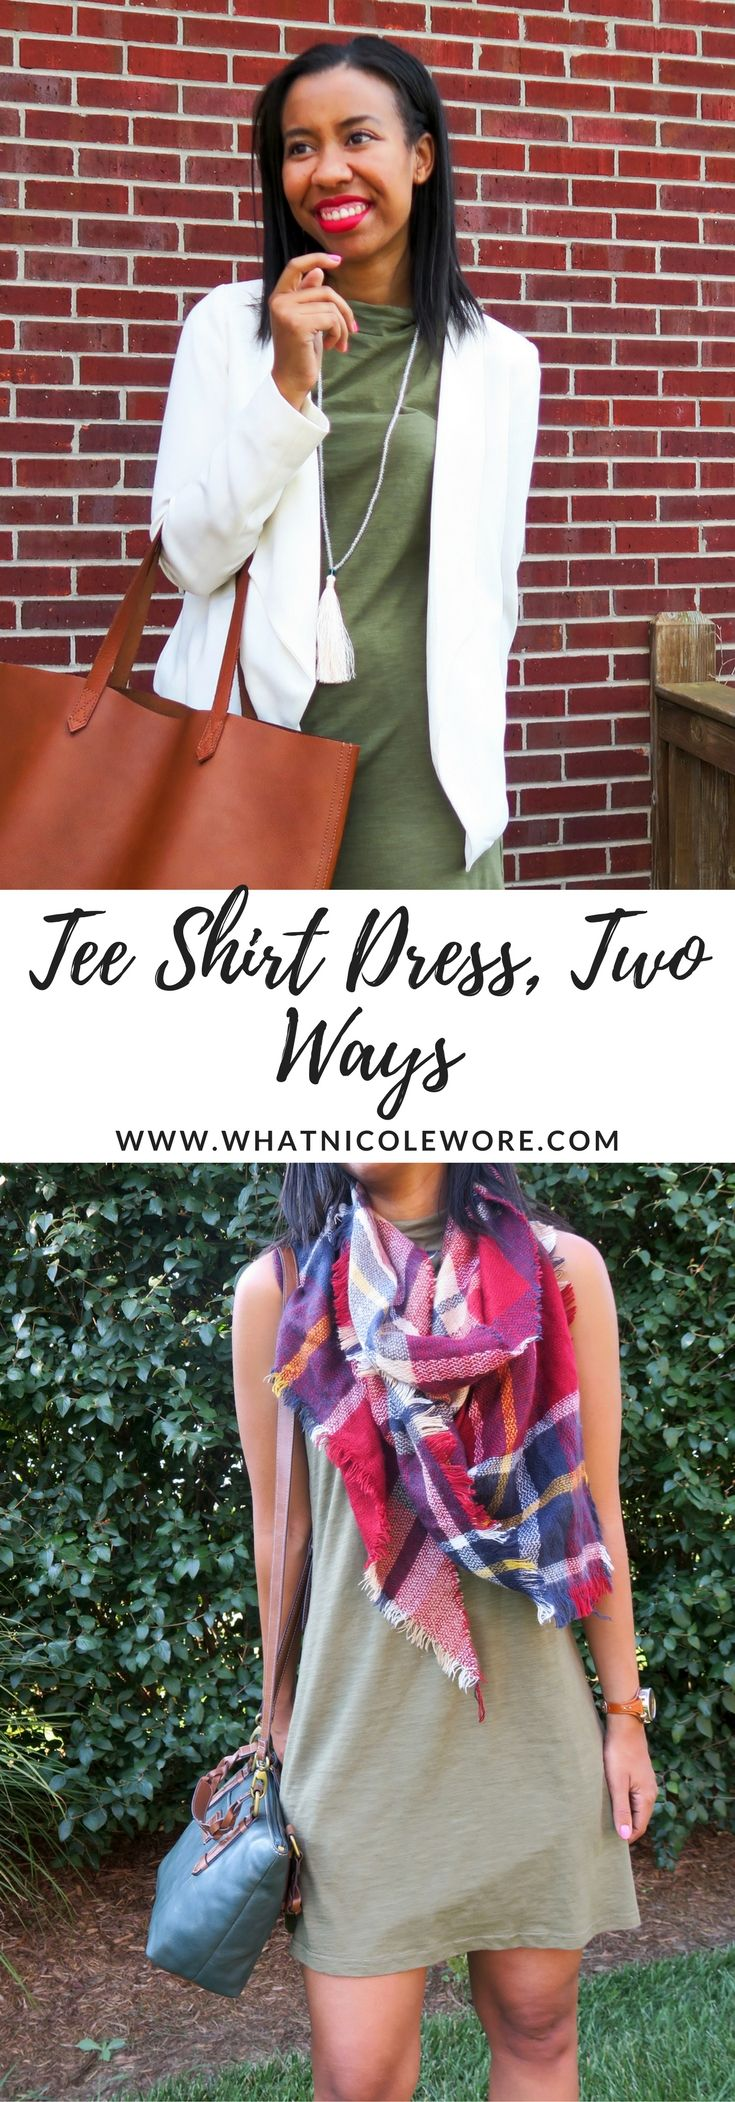 Affordable fashion blogger shares two ways to wear a tee shirt dress just in time for fall weather. How do you wear your tee shirt dresses?